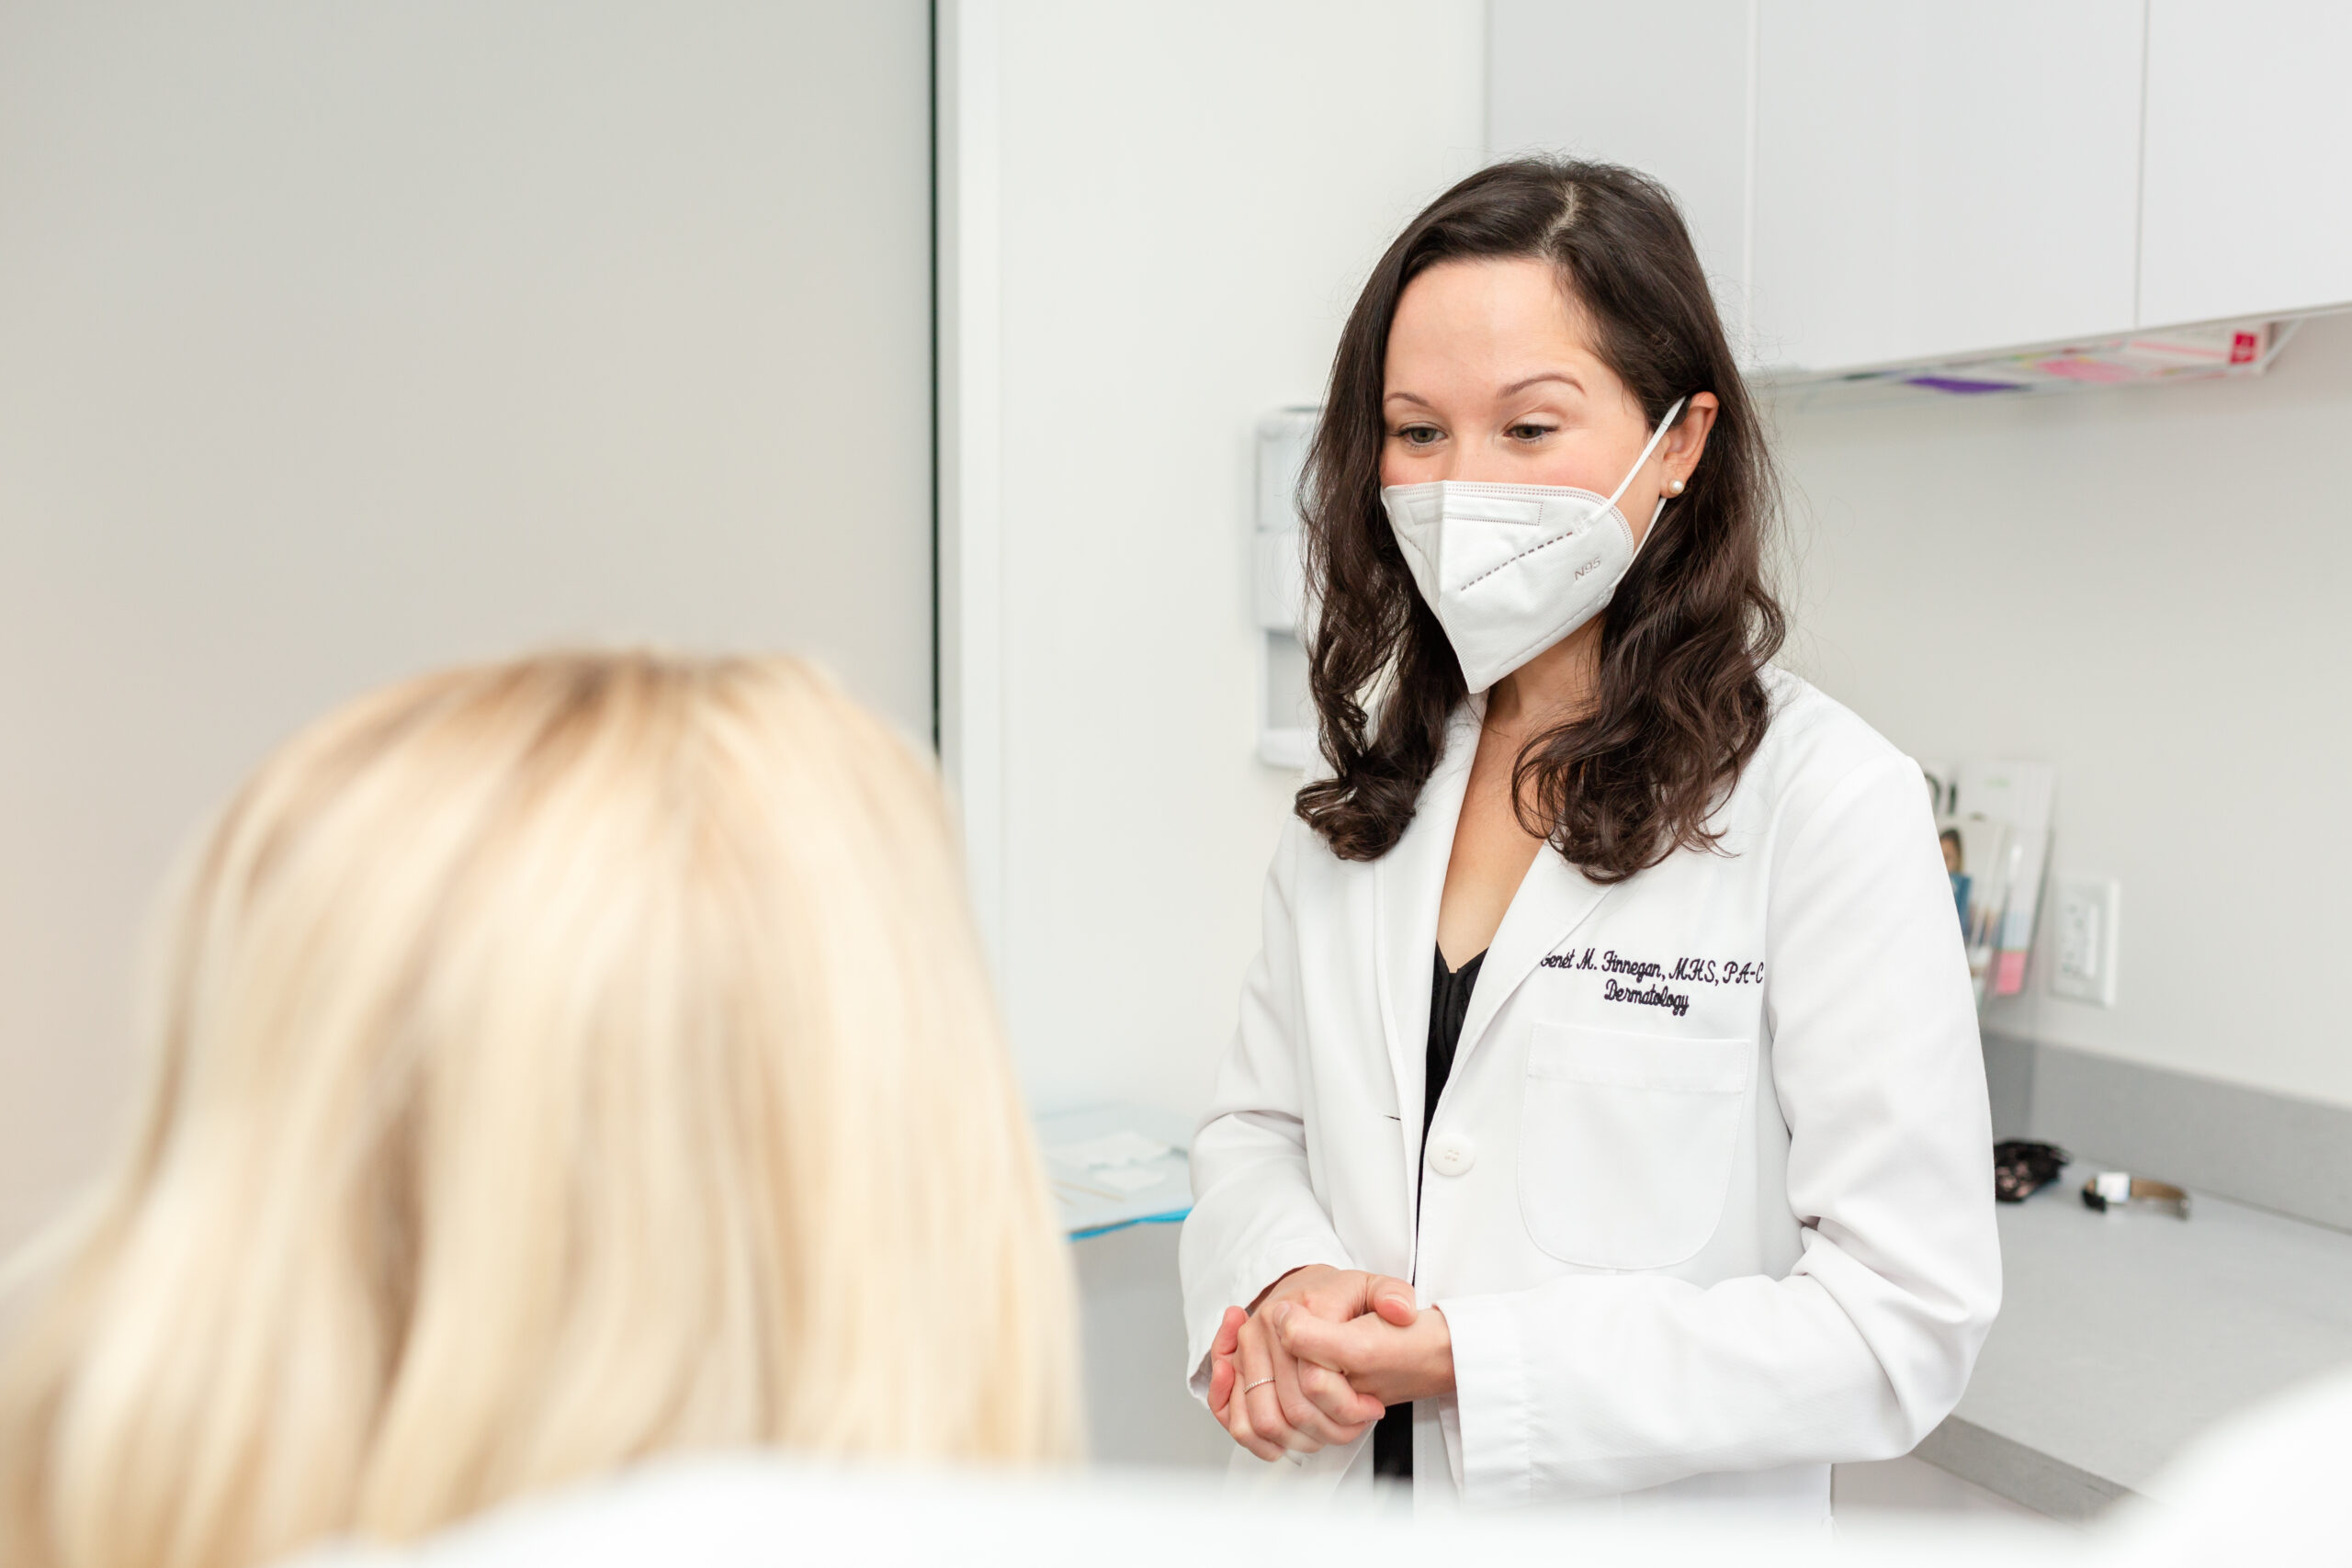 Genet Finnegan, PA is seeing a patient at spring street dermatology in New York, NY.